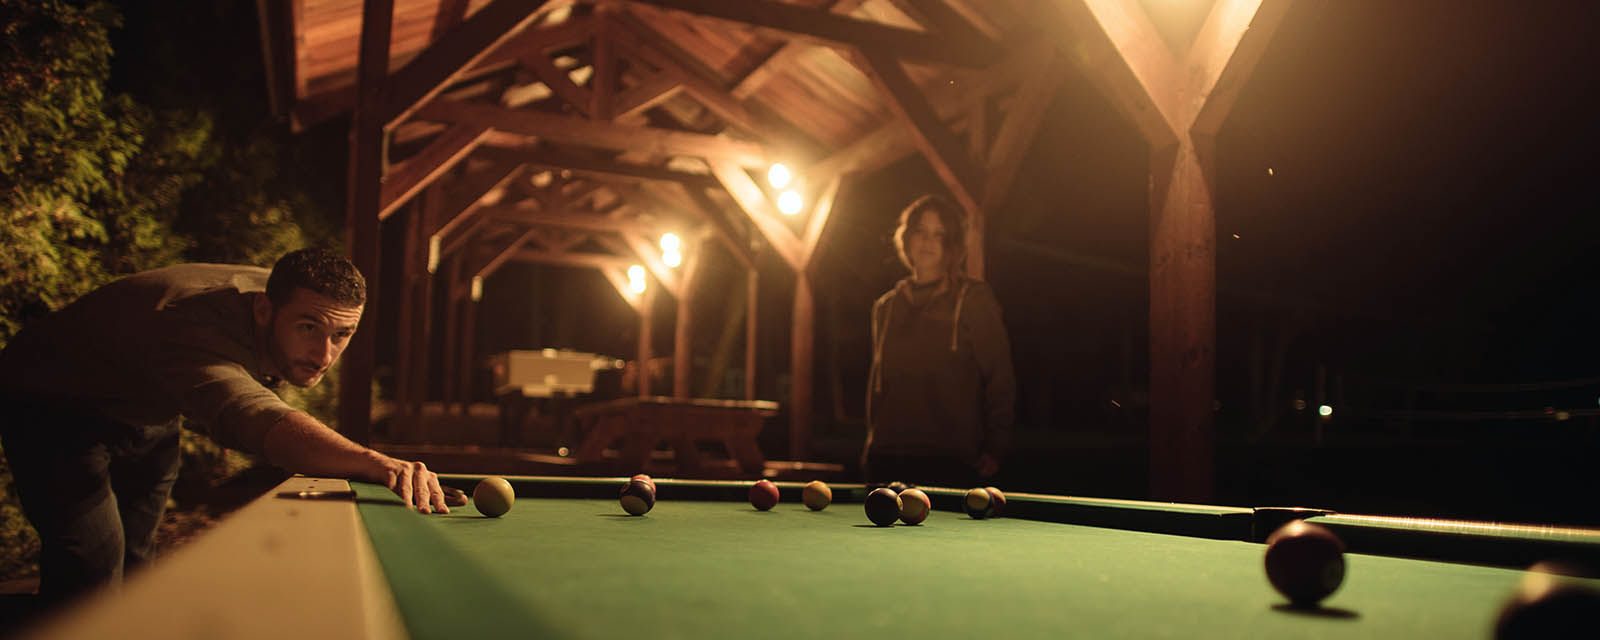 couple playing billiards at night